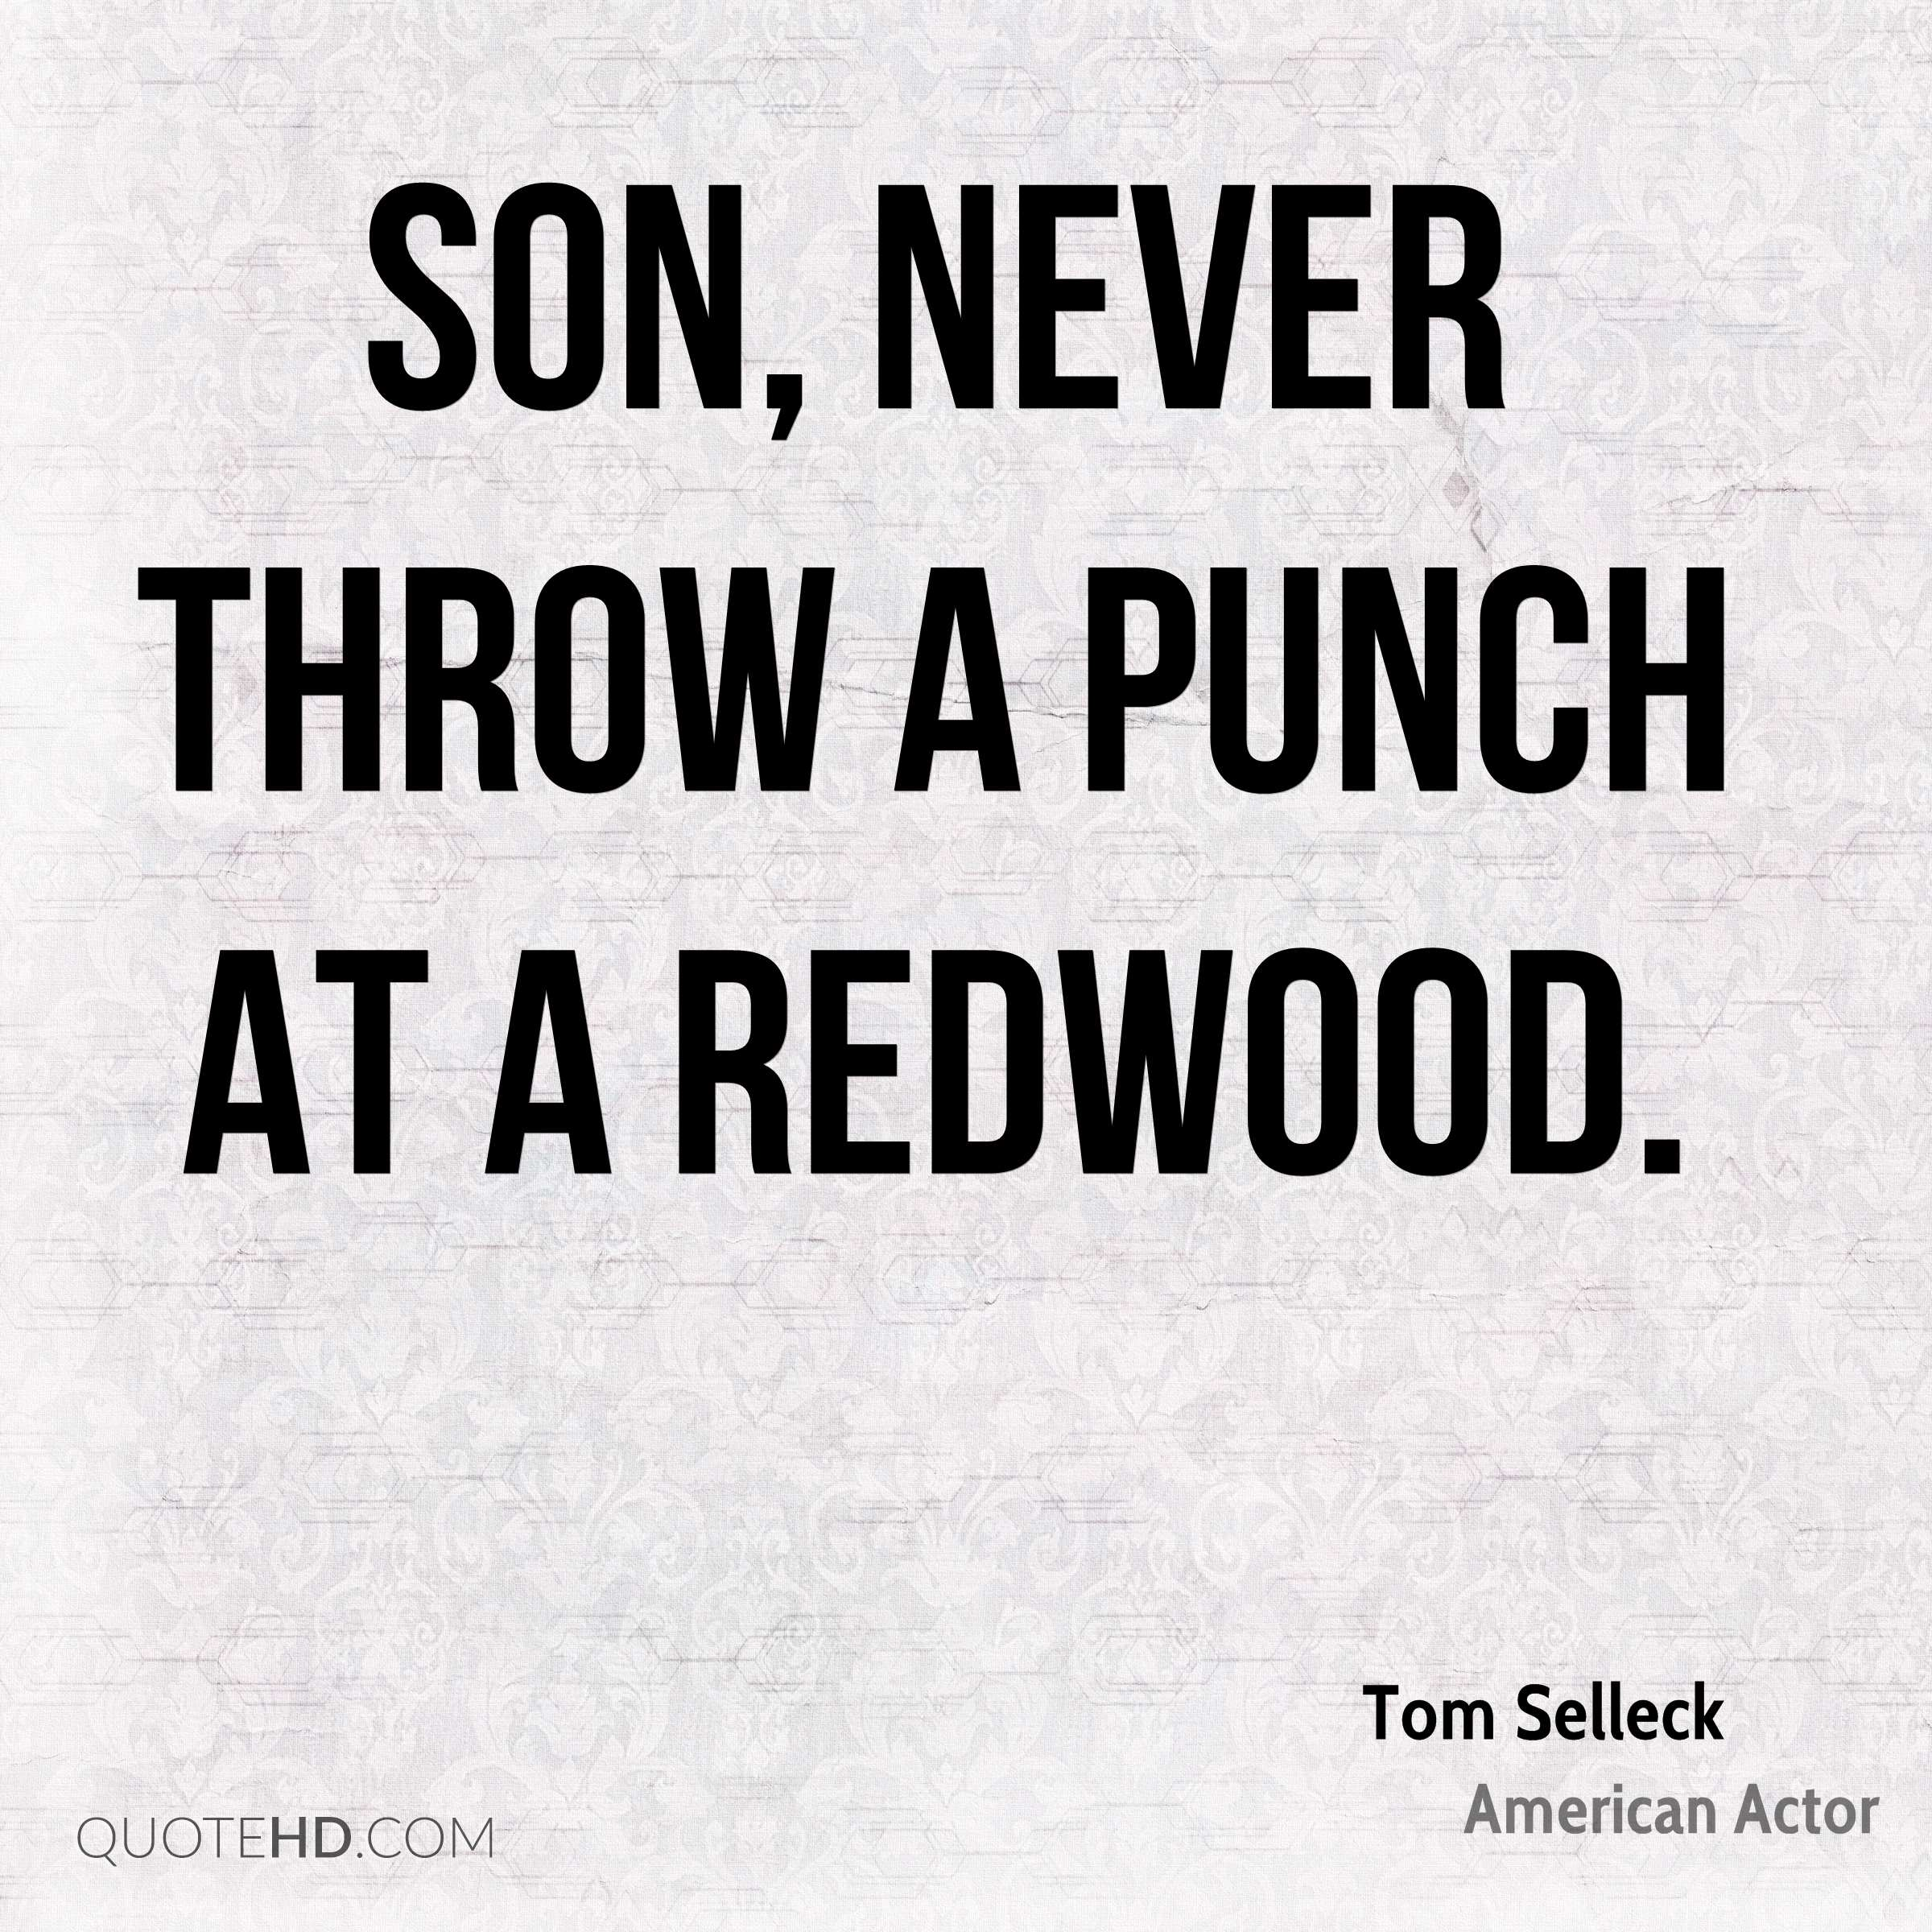 Son, never throw a punch at a redwood.